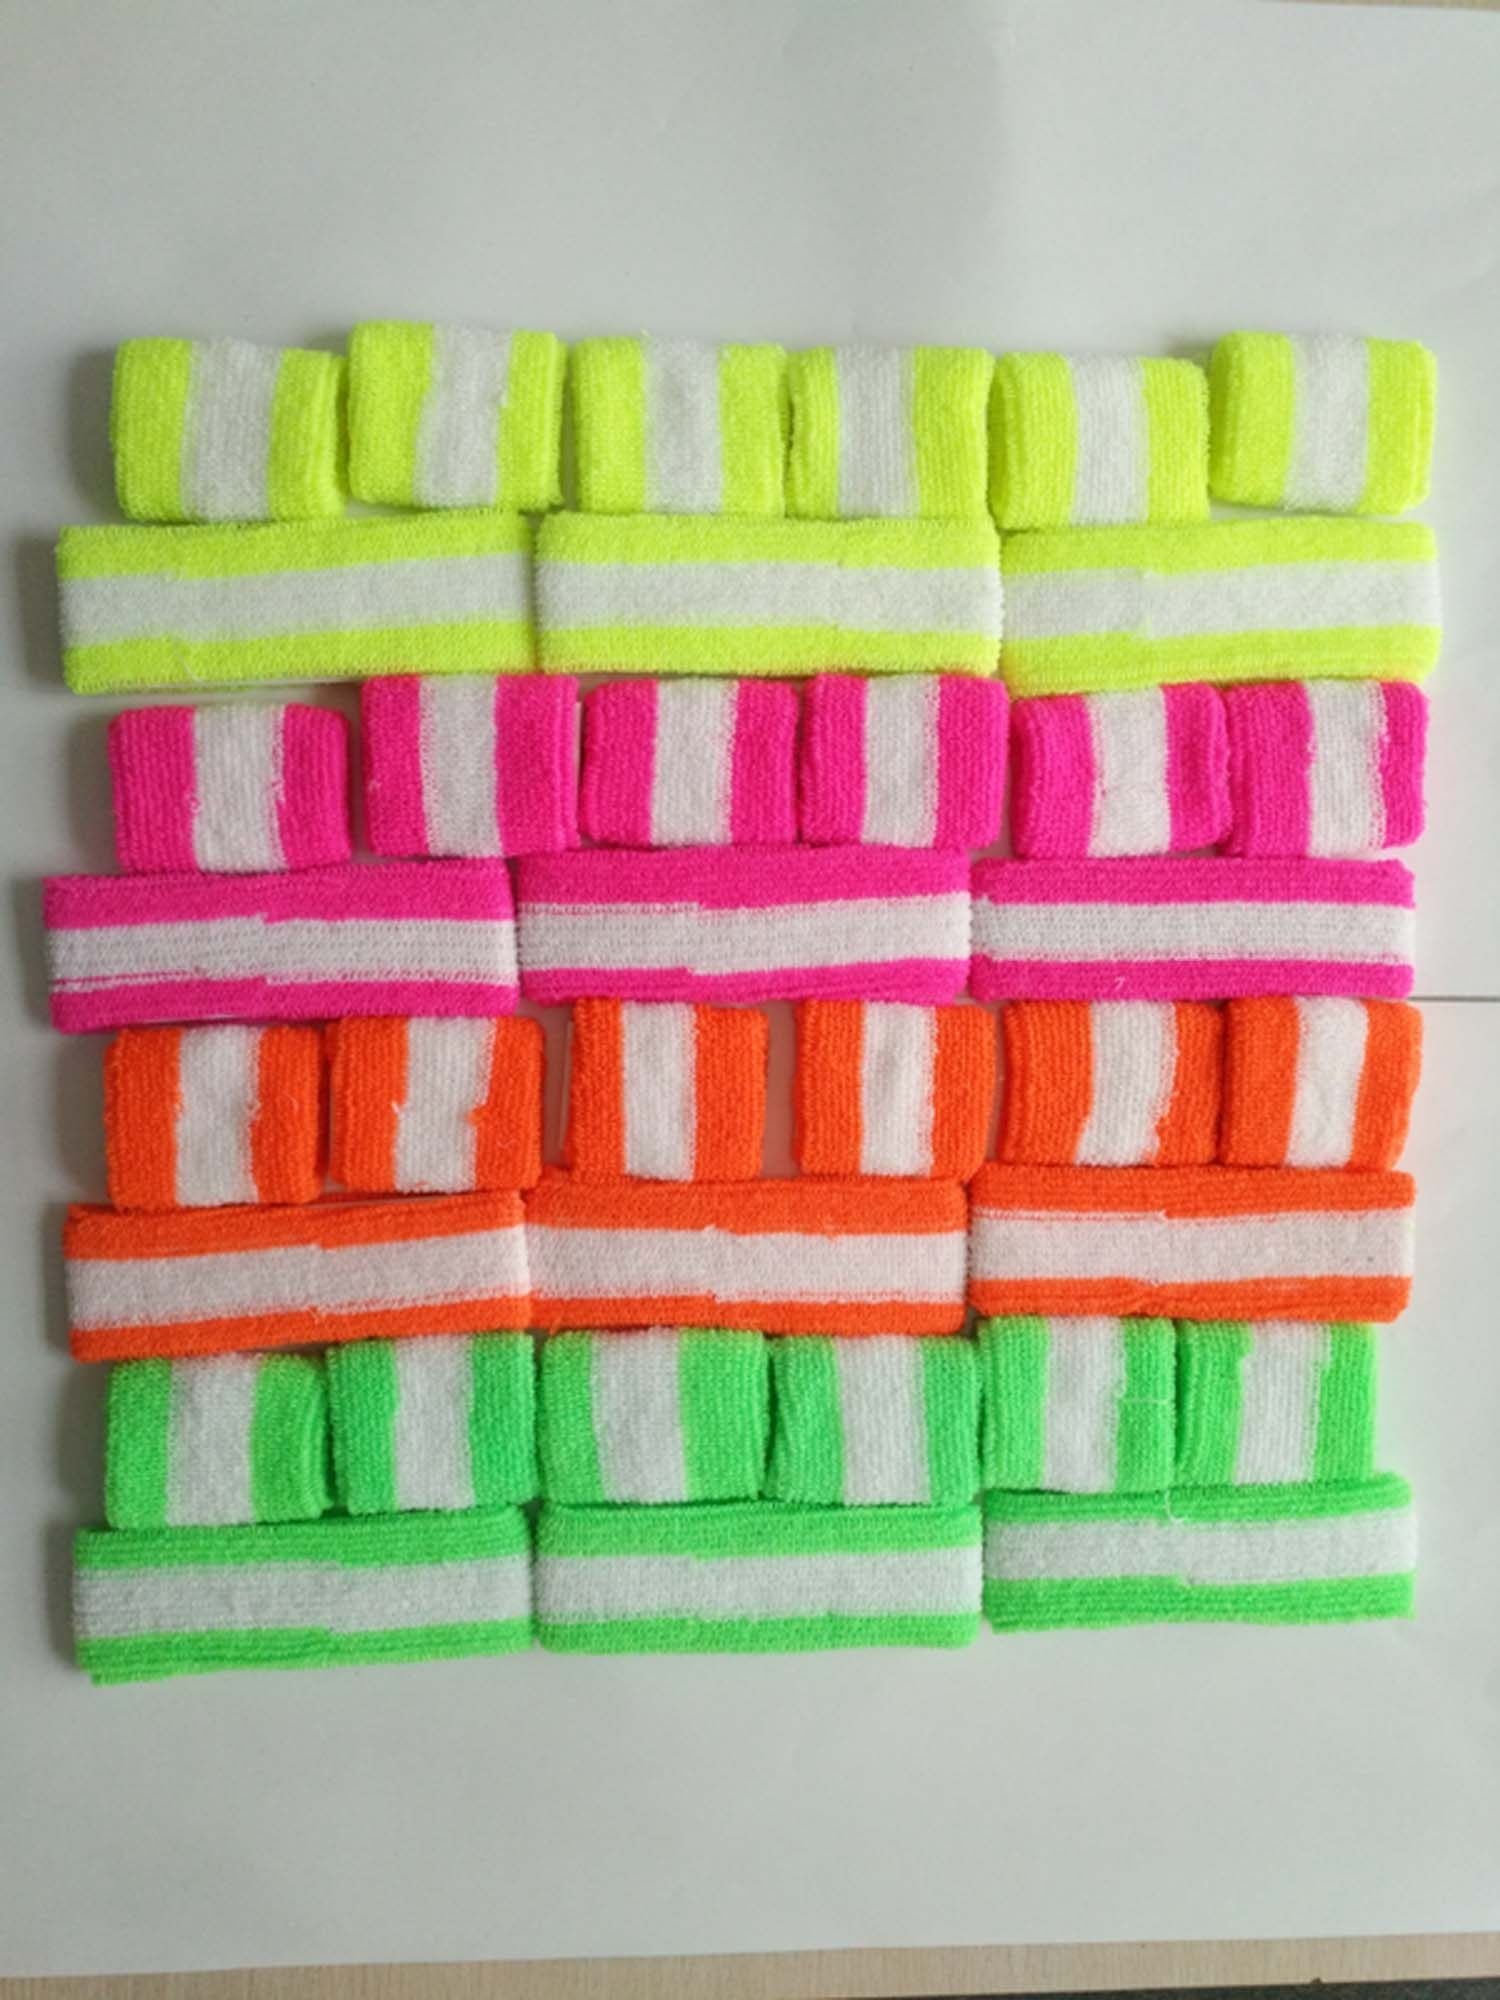 NEON & WHITE STRIPE SWEATBAND SET,  4 COLORS